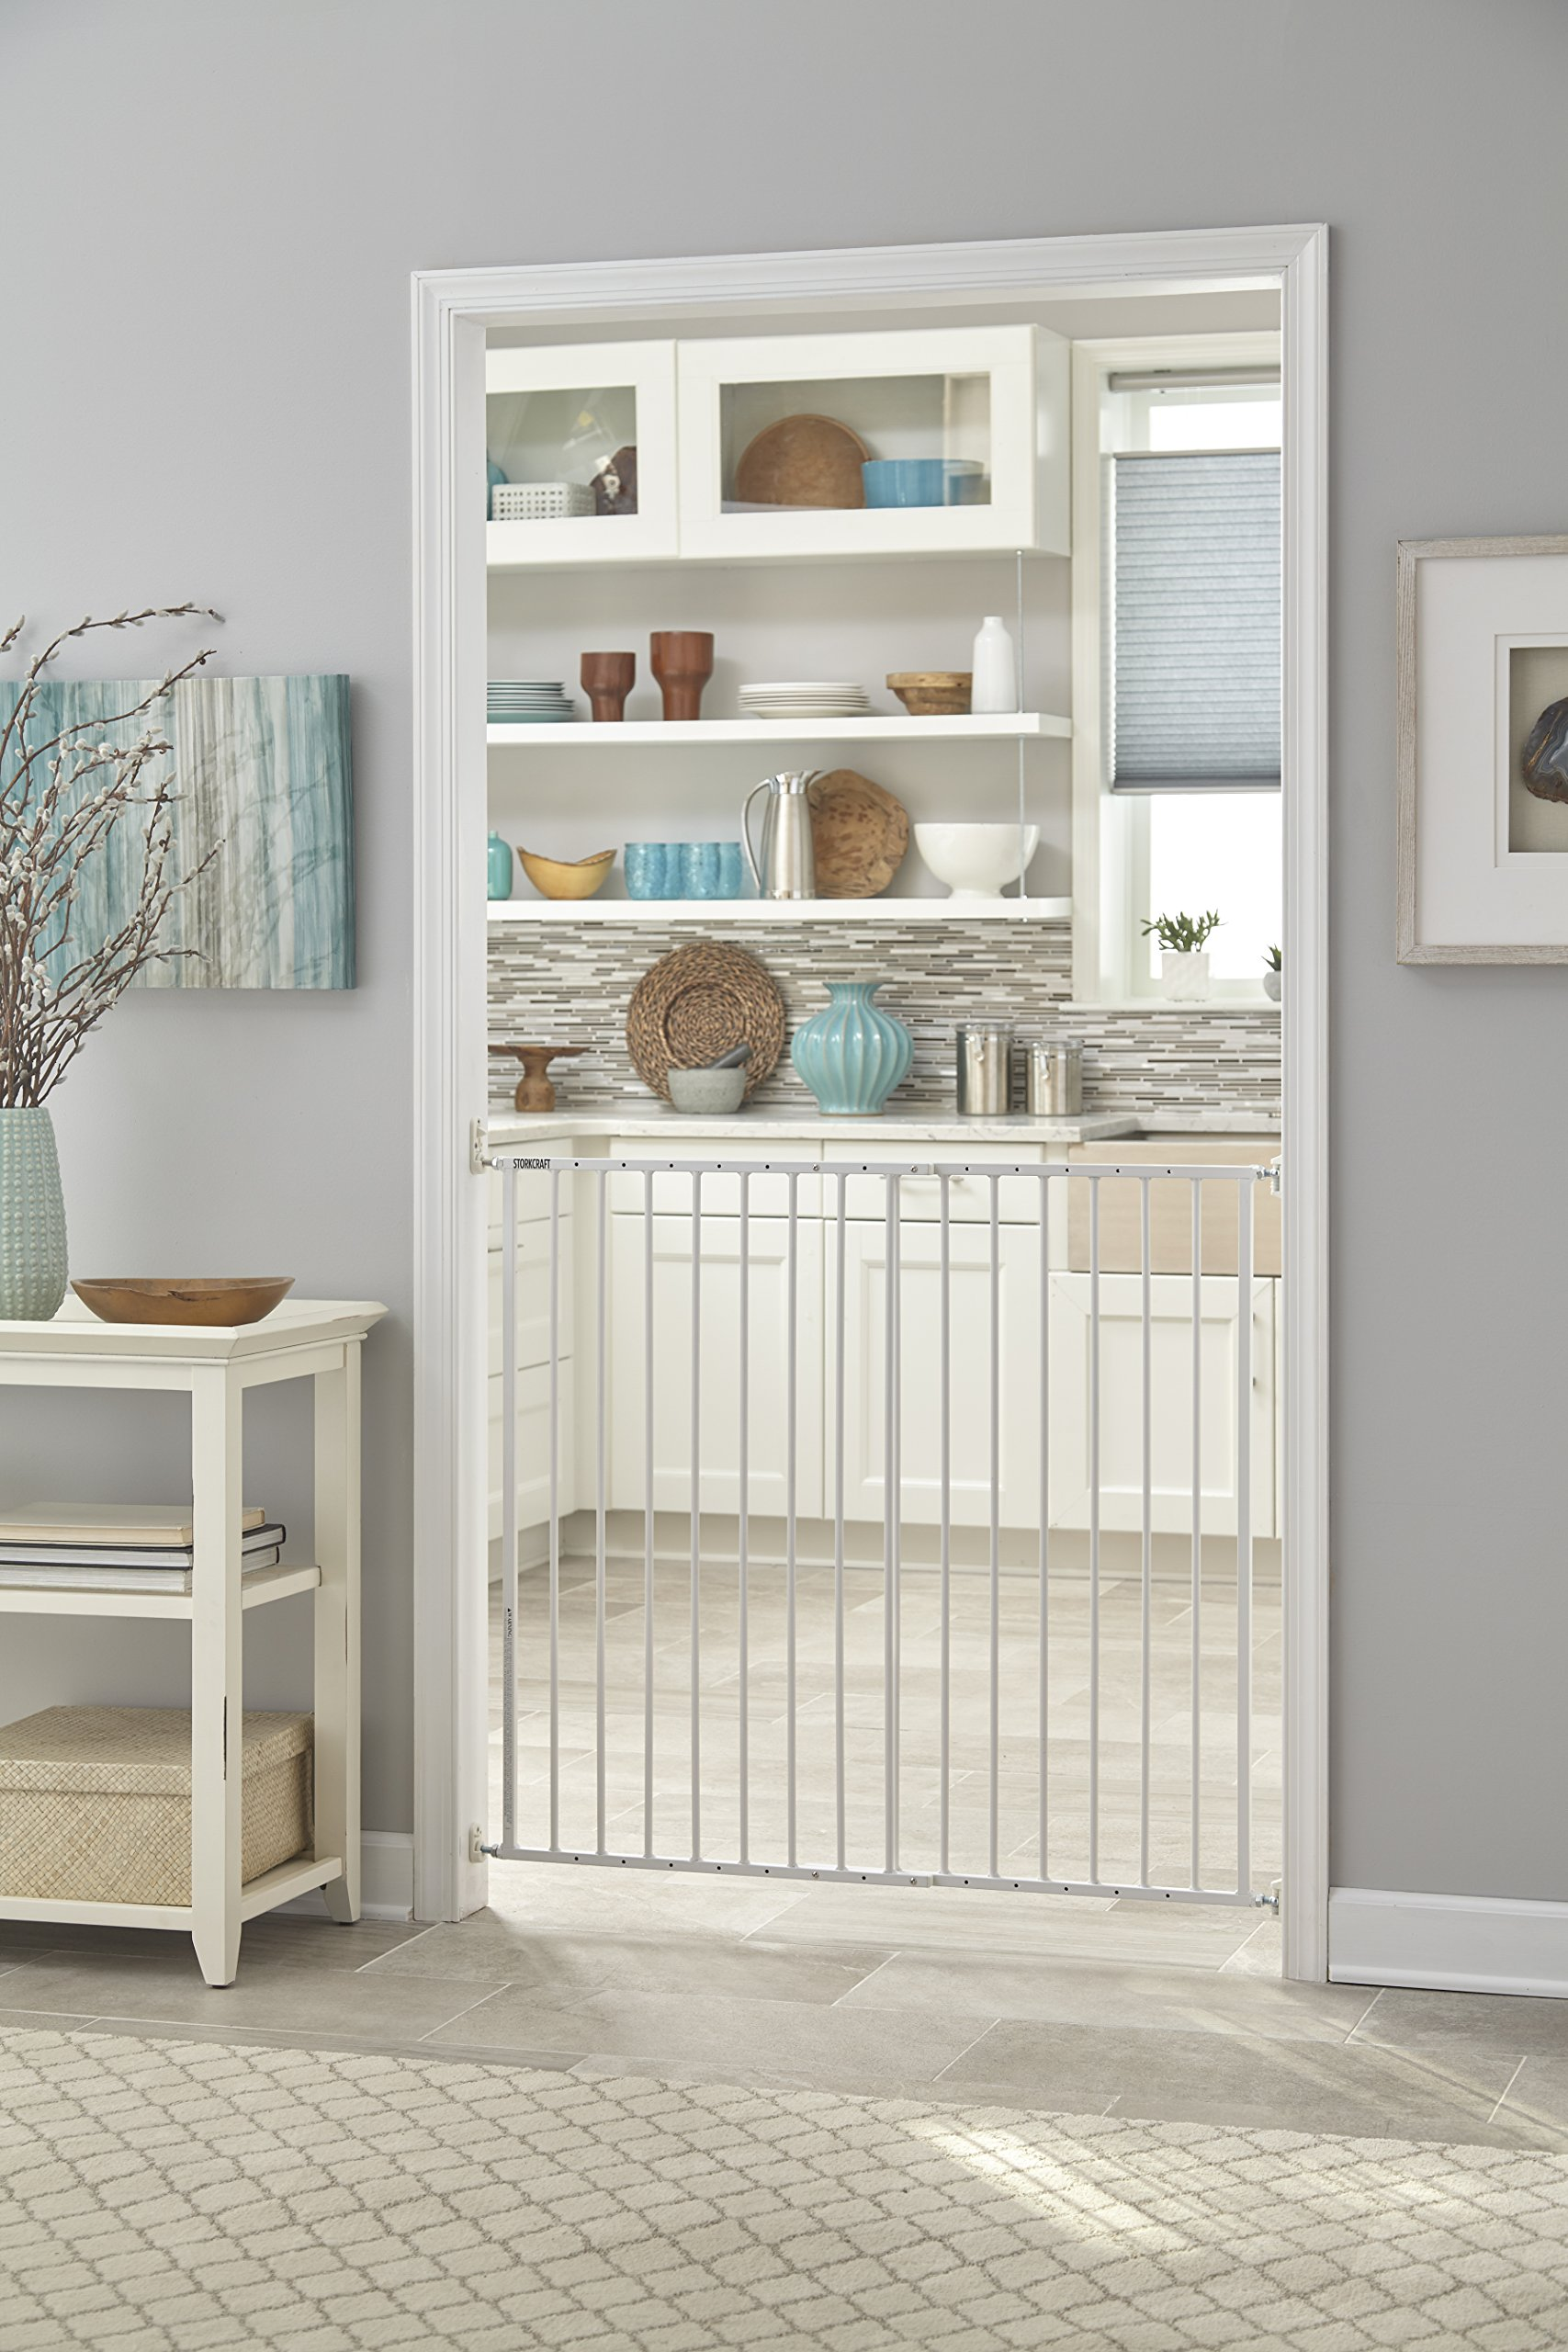 Storkcraft Easy Walk-Thru Tall Metal Safety Gate, White Adjustable Baby Safety Gate For Doorways and Stairs, Great for Children and Pets by Stork Craft (Image #7)